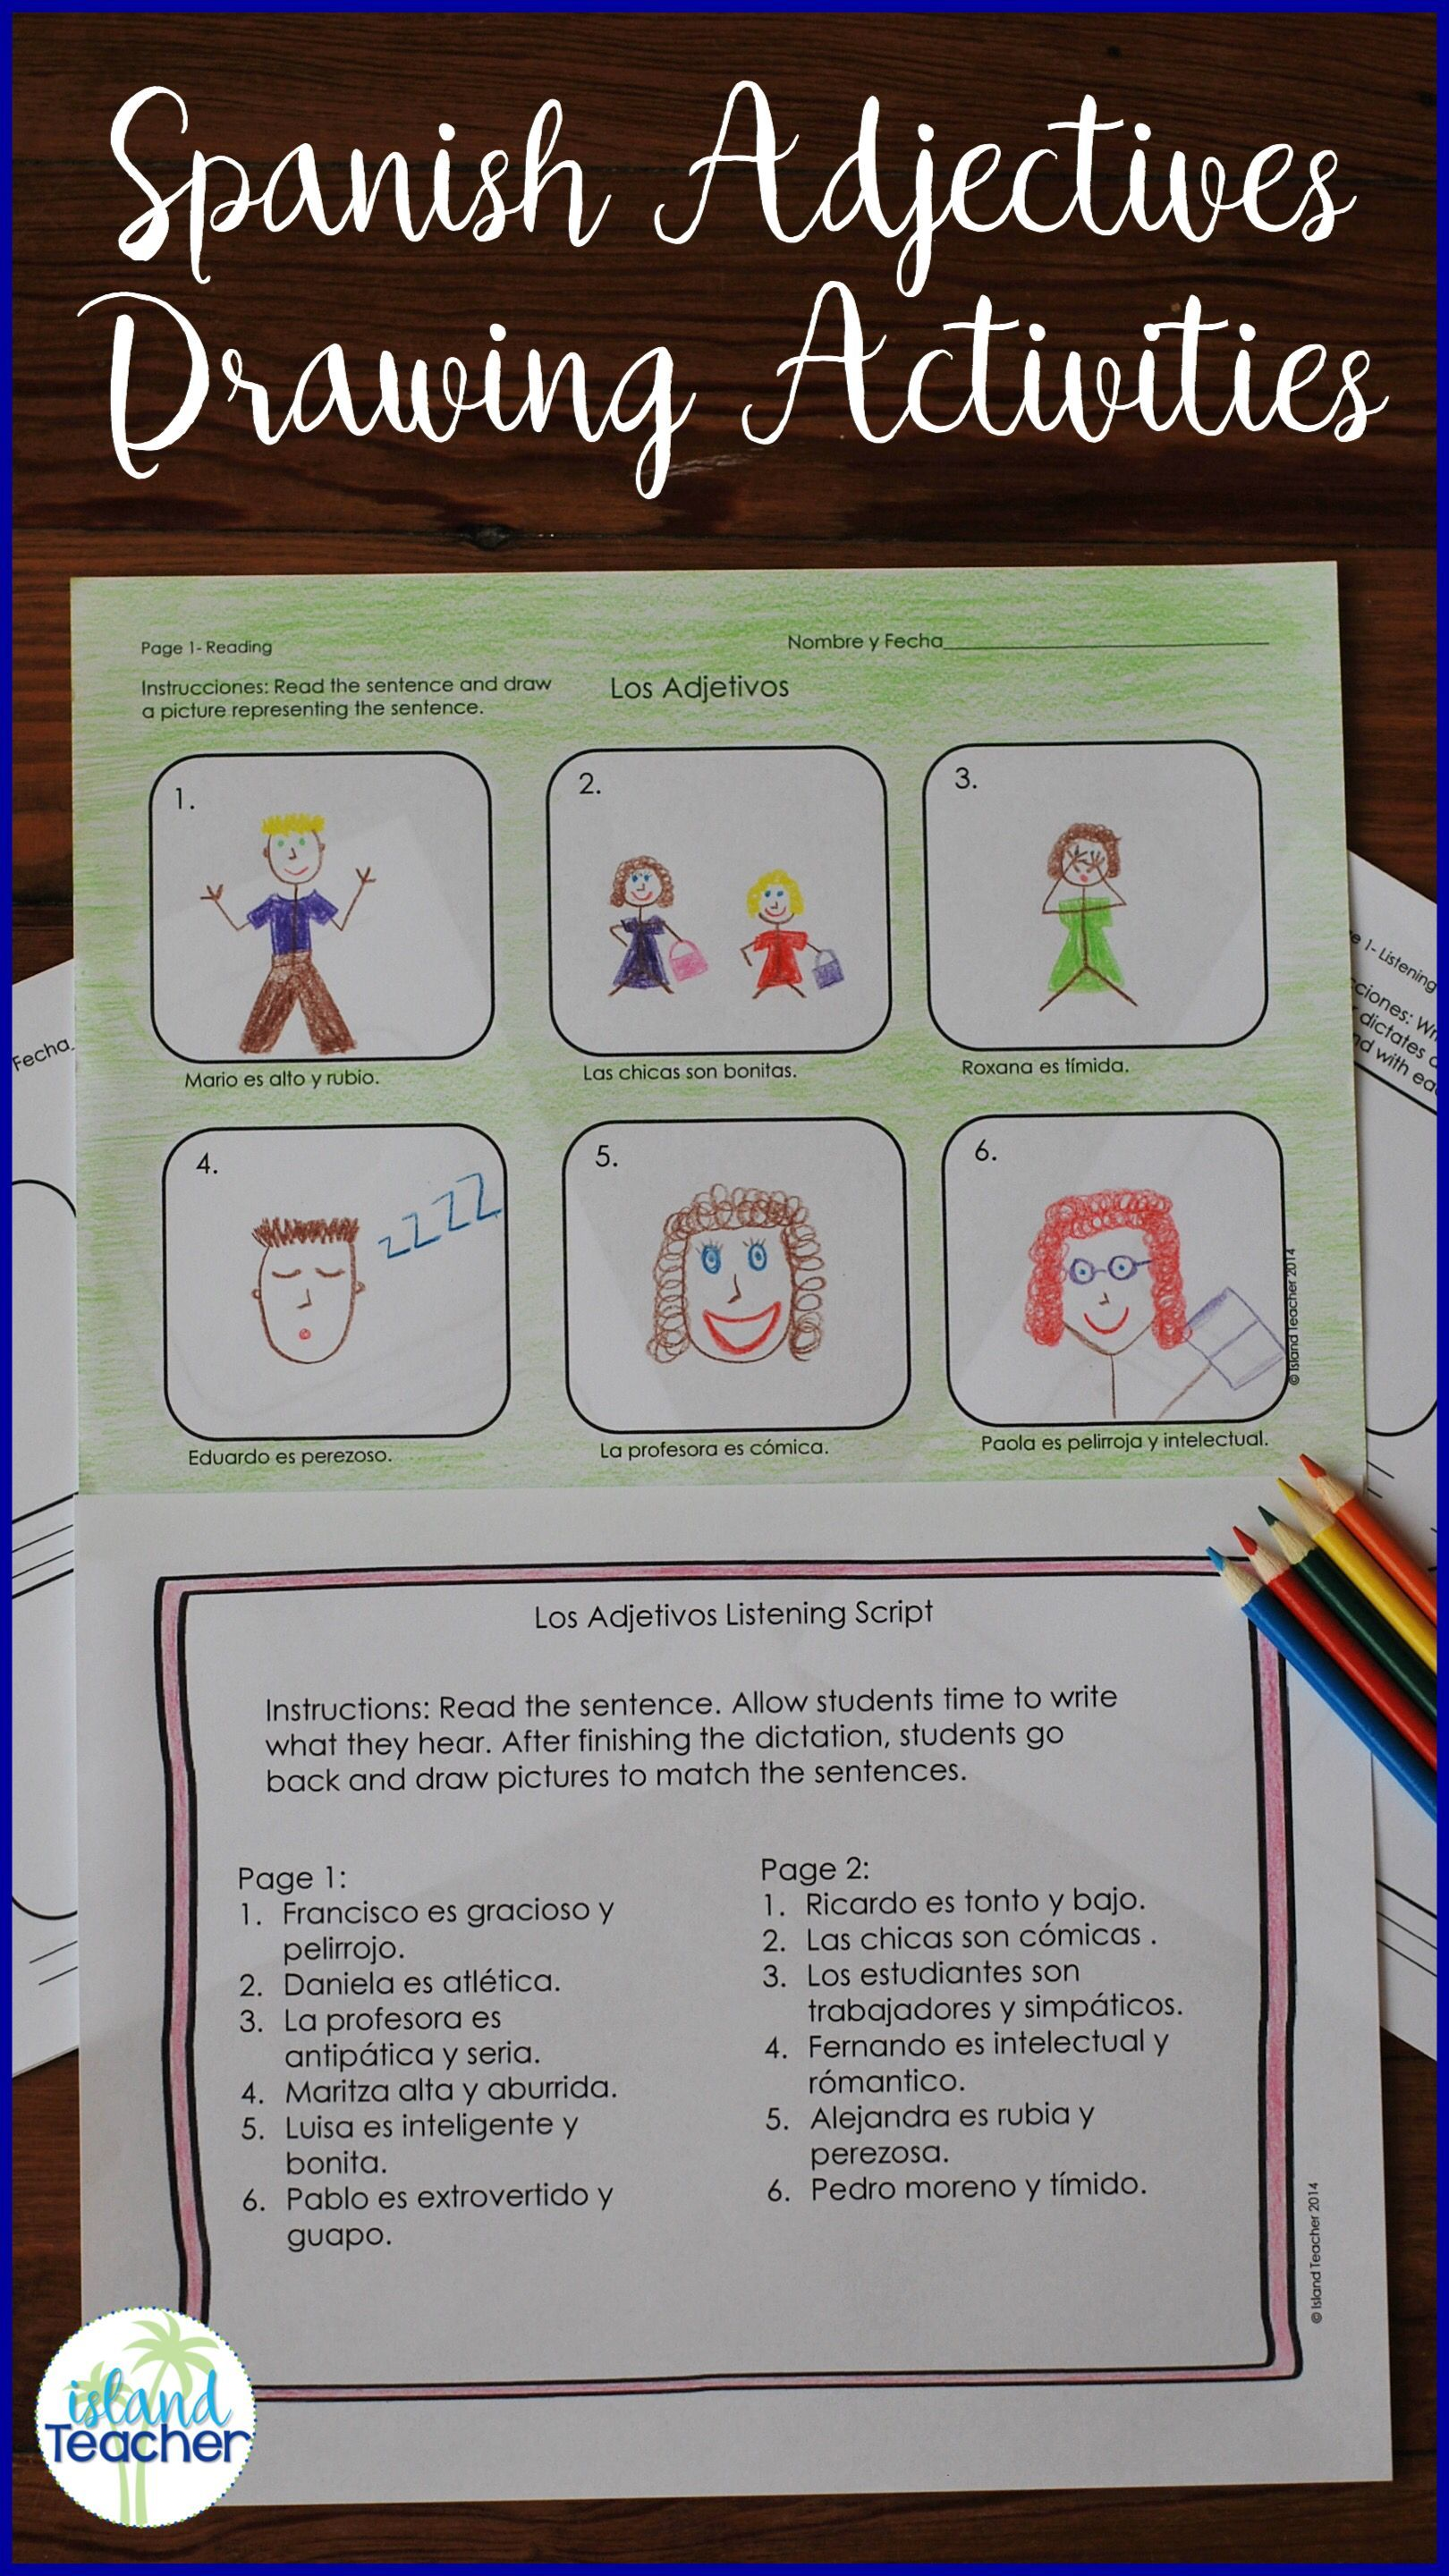 Los Adjetivos Spanish Adjectives Drawing Activity With